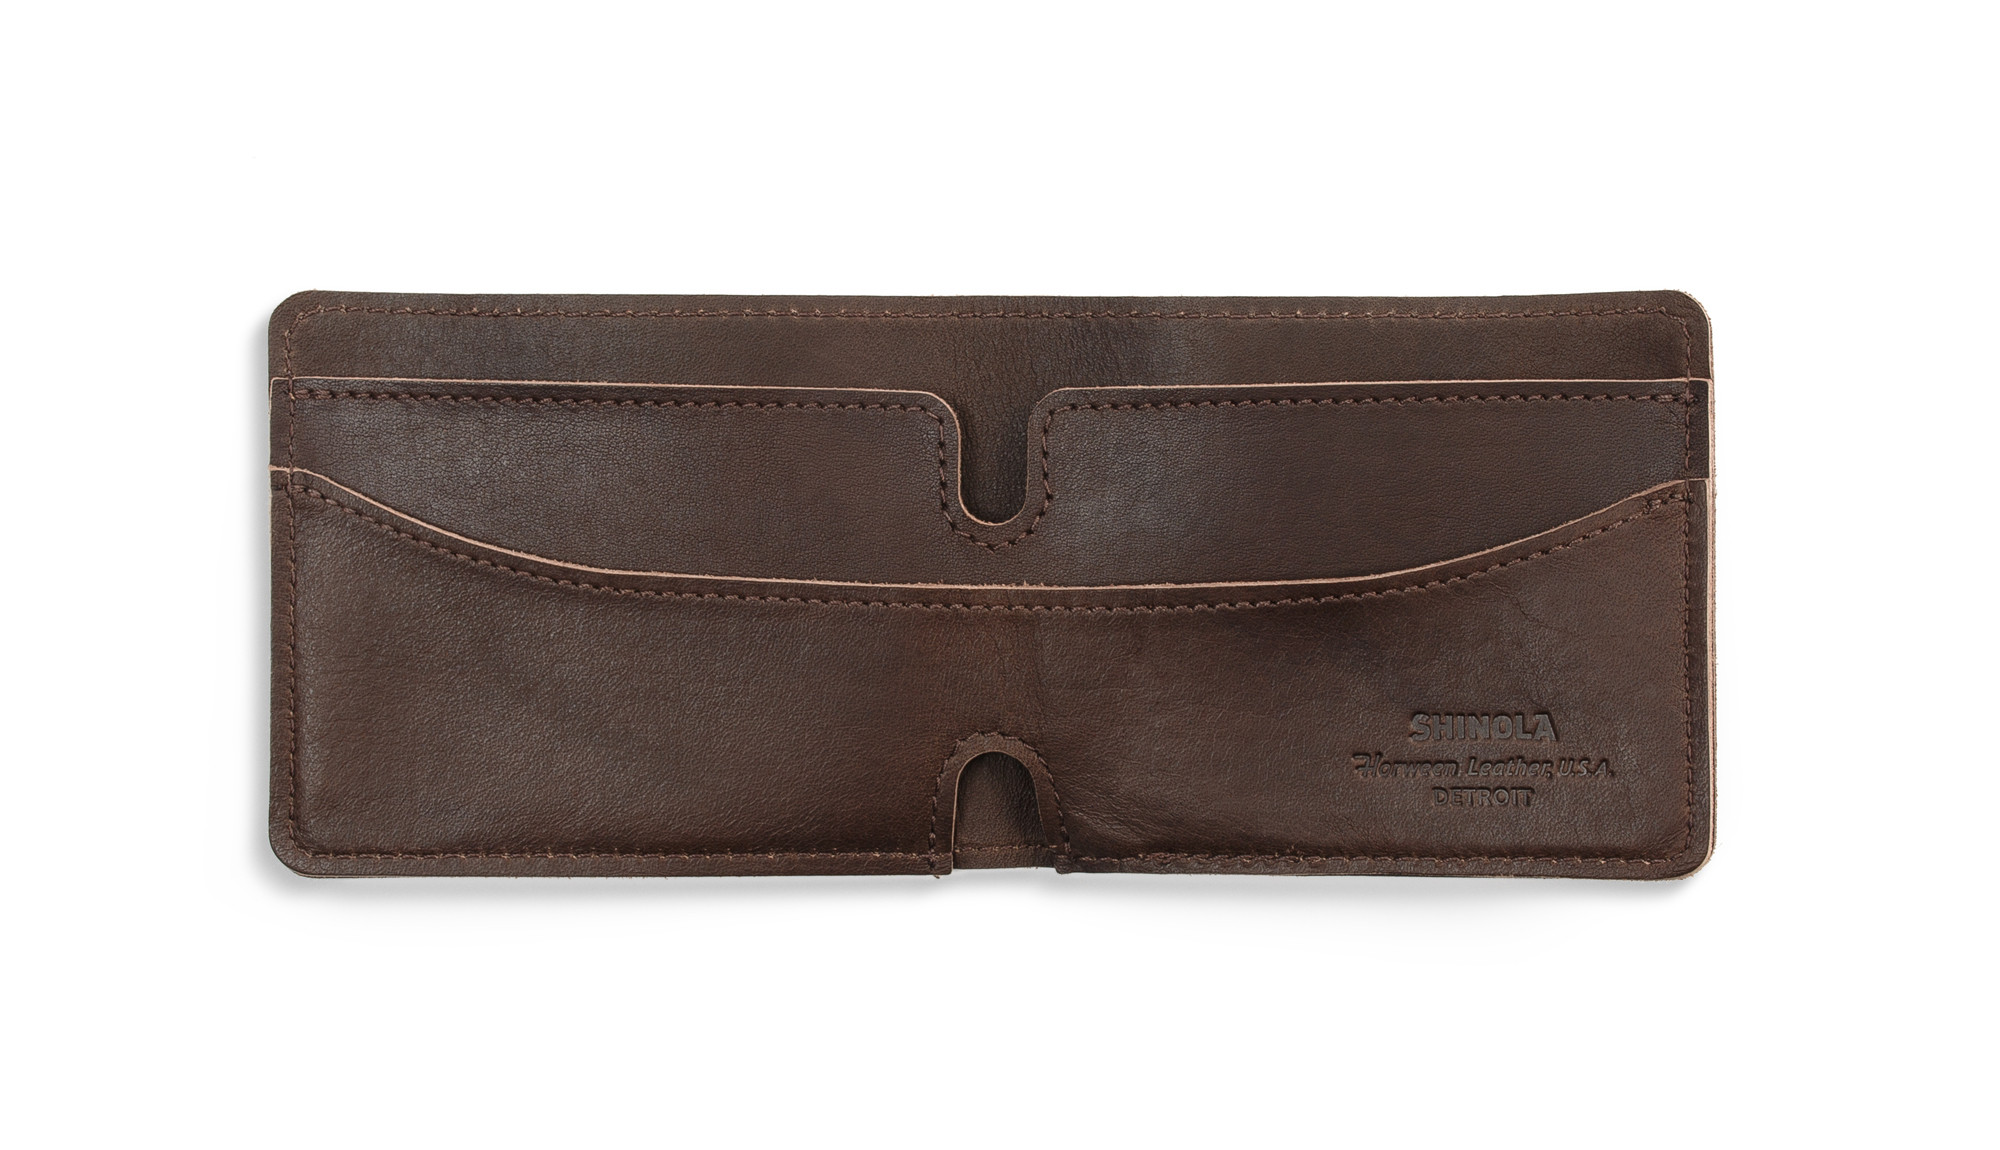 2015 Father's Day Shinola Leather Bi-Fold Wallet